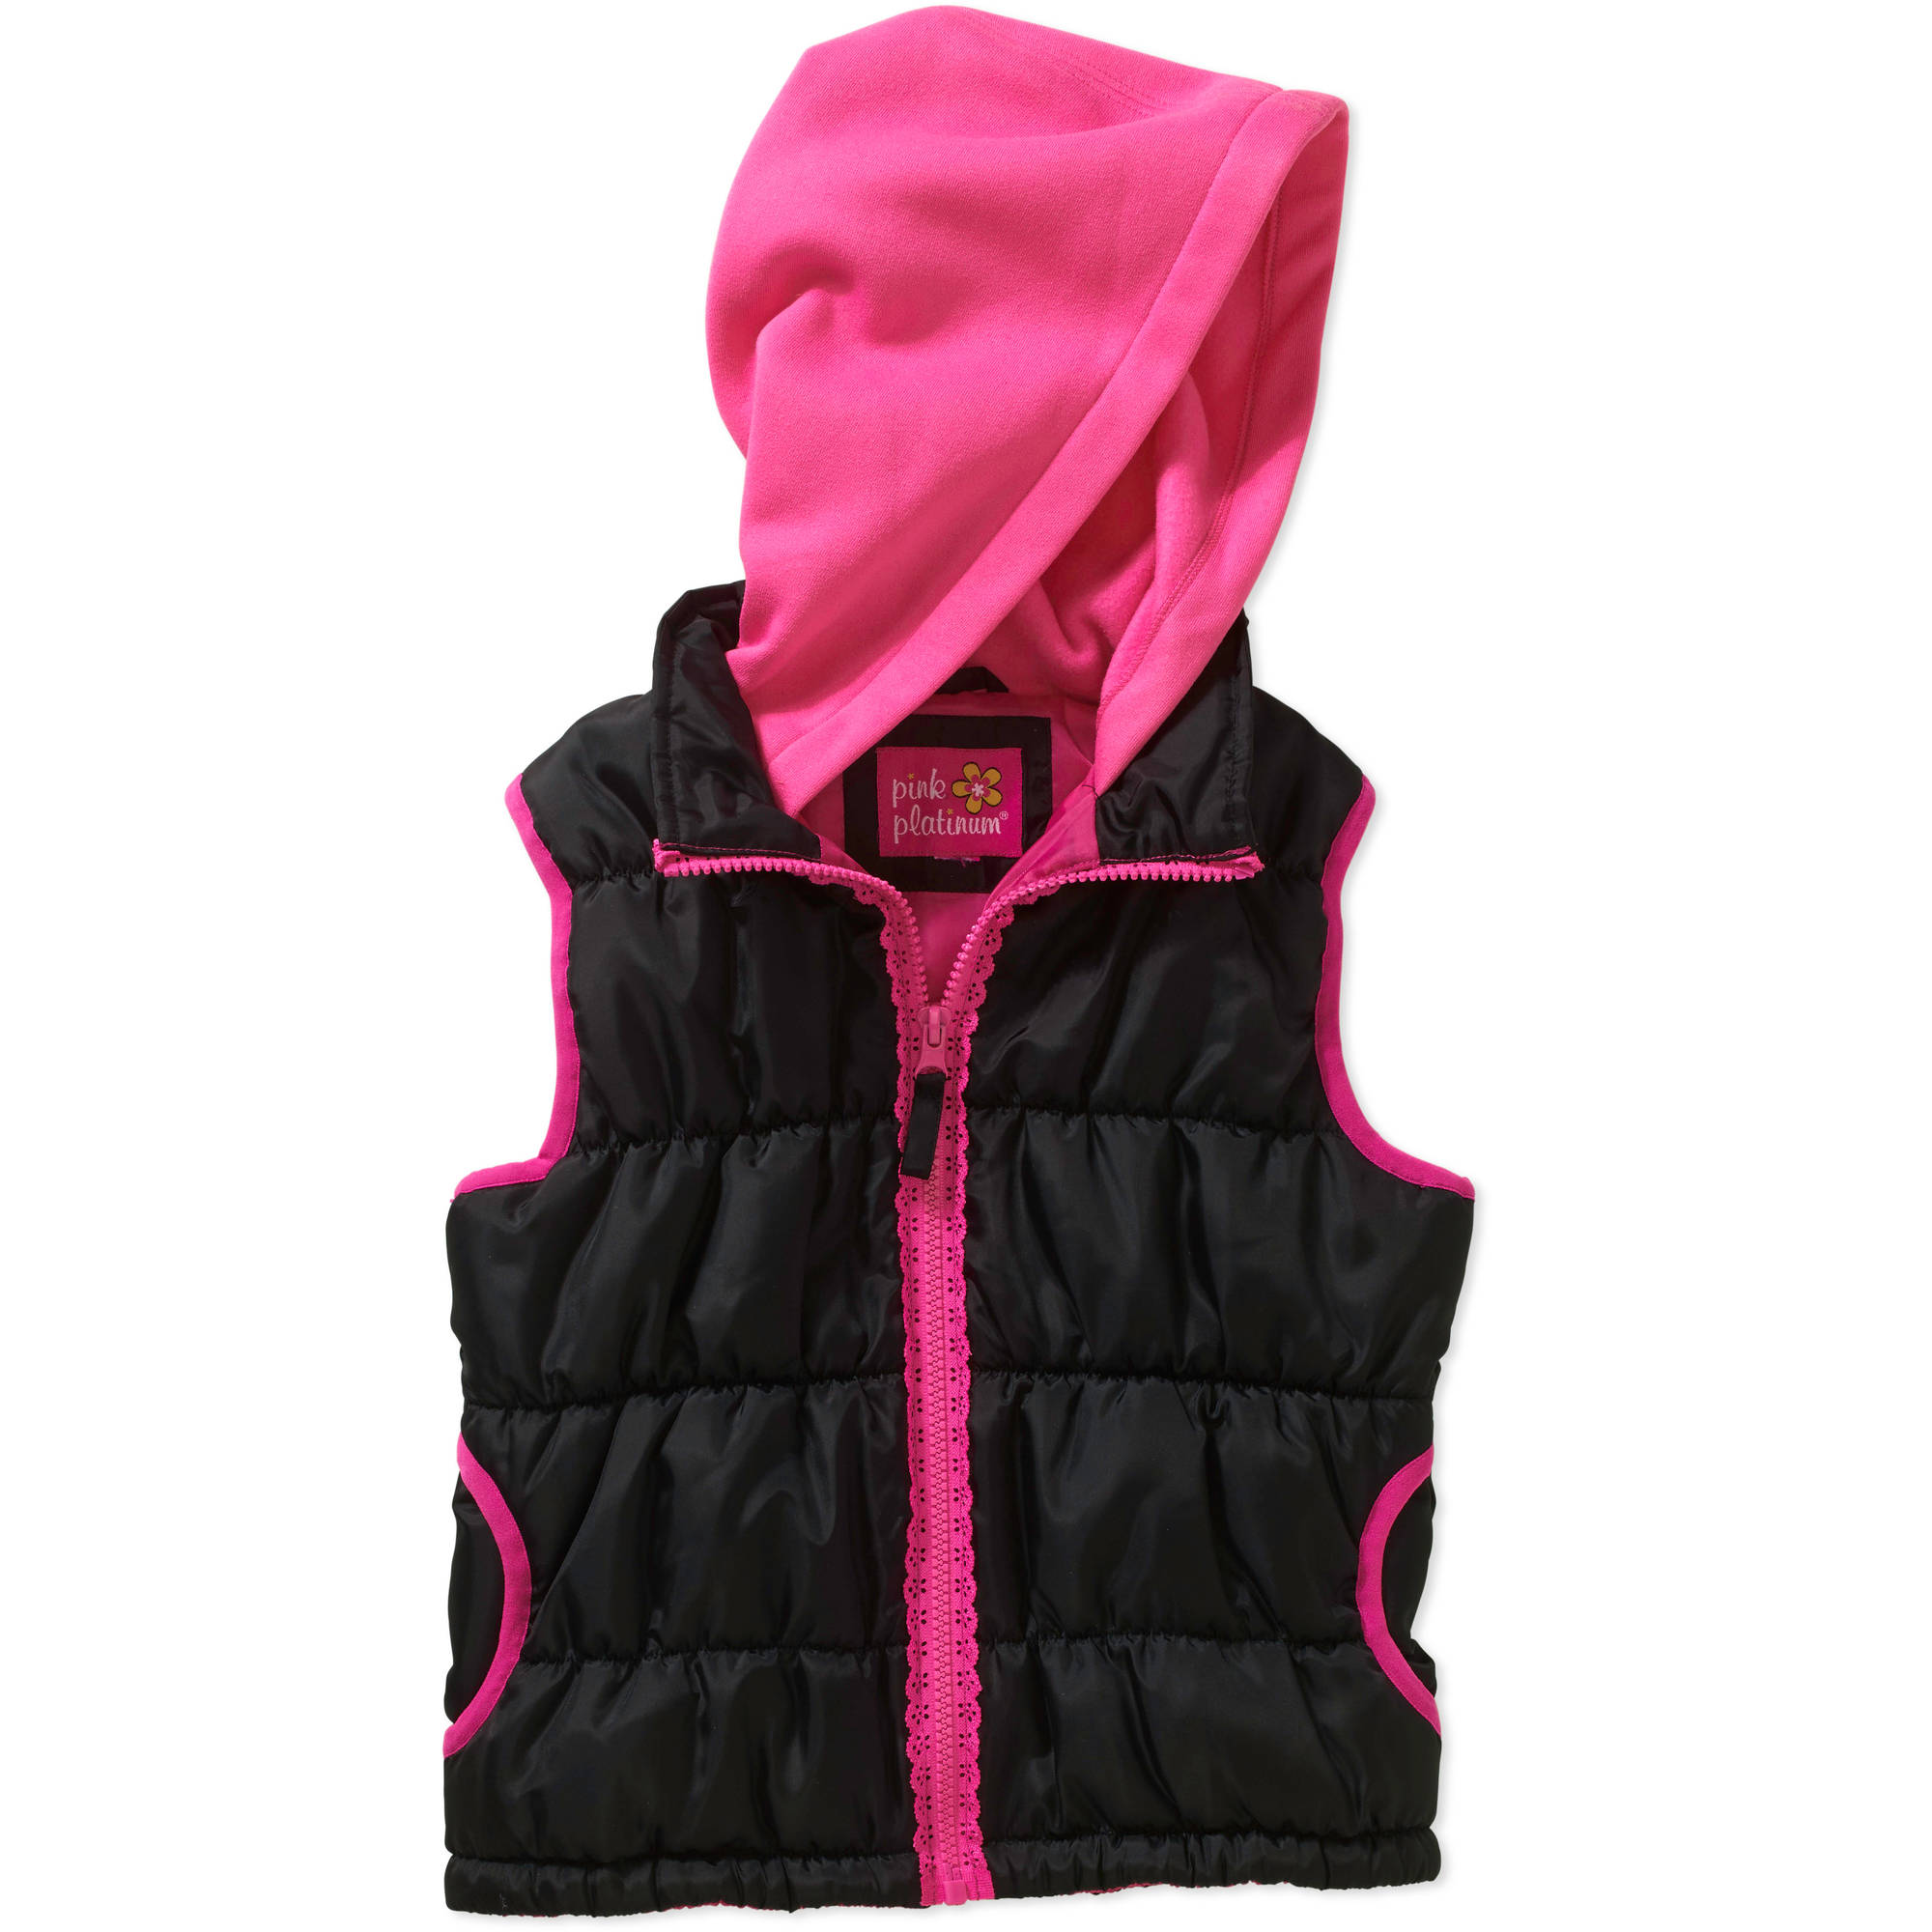 Pink Platinum Girls 4-6X Lace Puffer Jacket